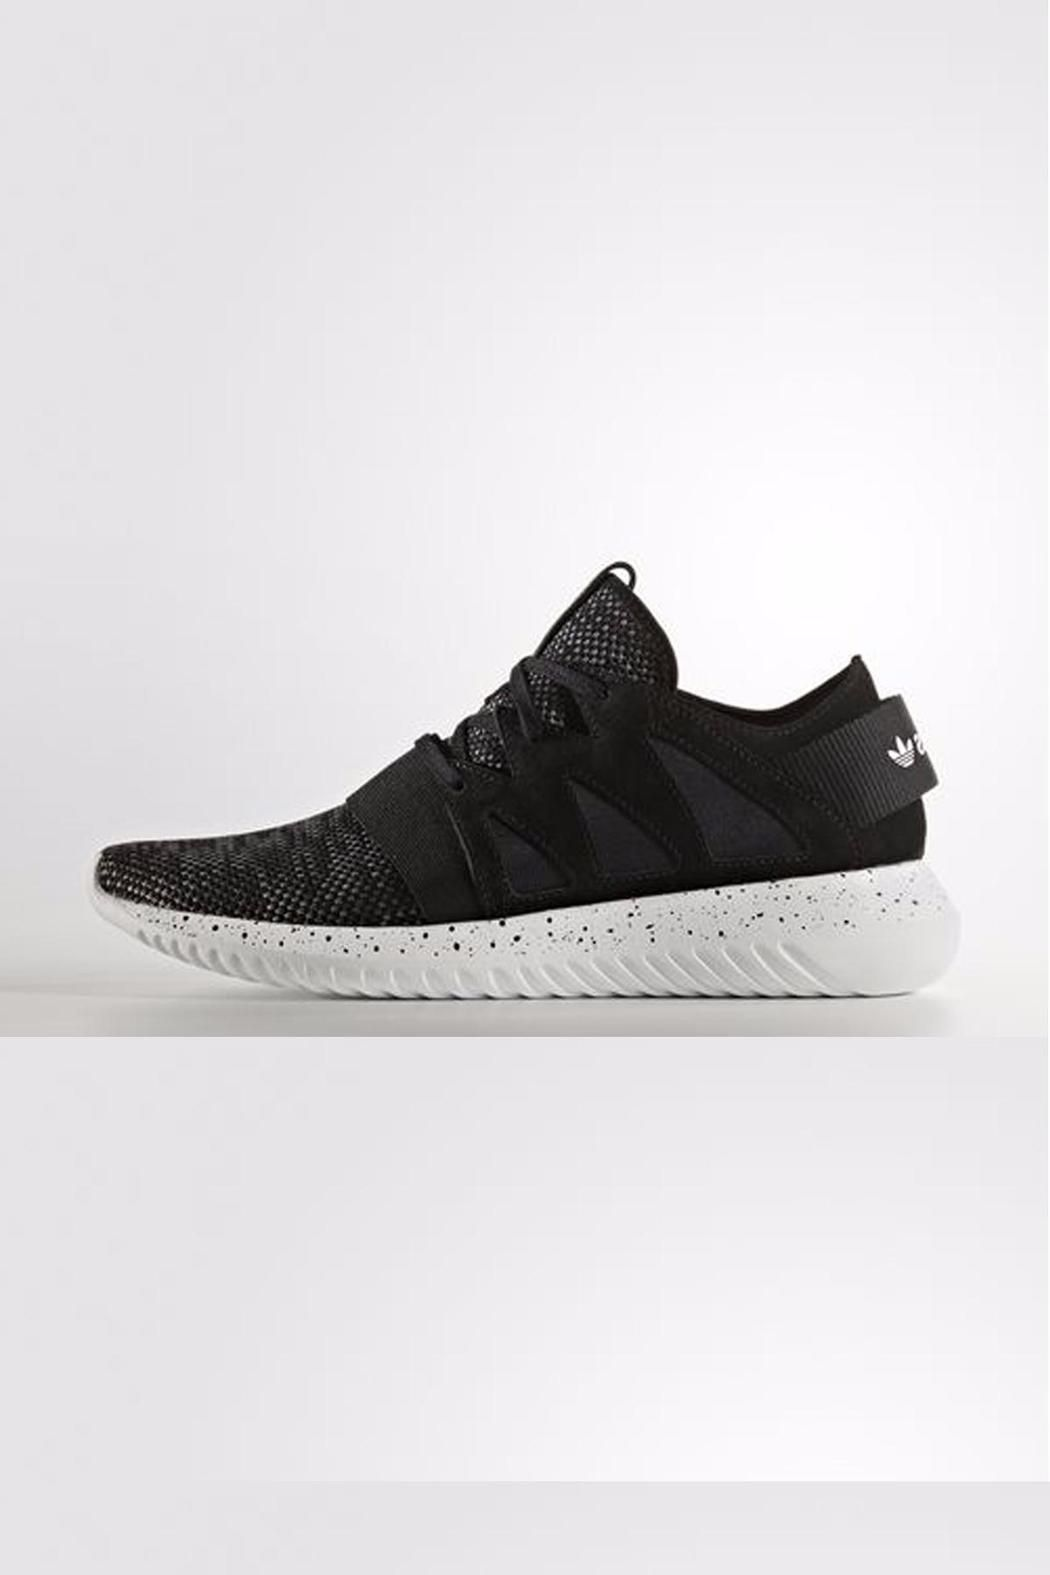 sale retailer 8b4c1 91552 TUBULAR SHOES WITH A MÉLANGE UPPER AND A SPECKLED OUTSOLE. The Tubular  streetwear series evolved